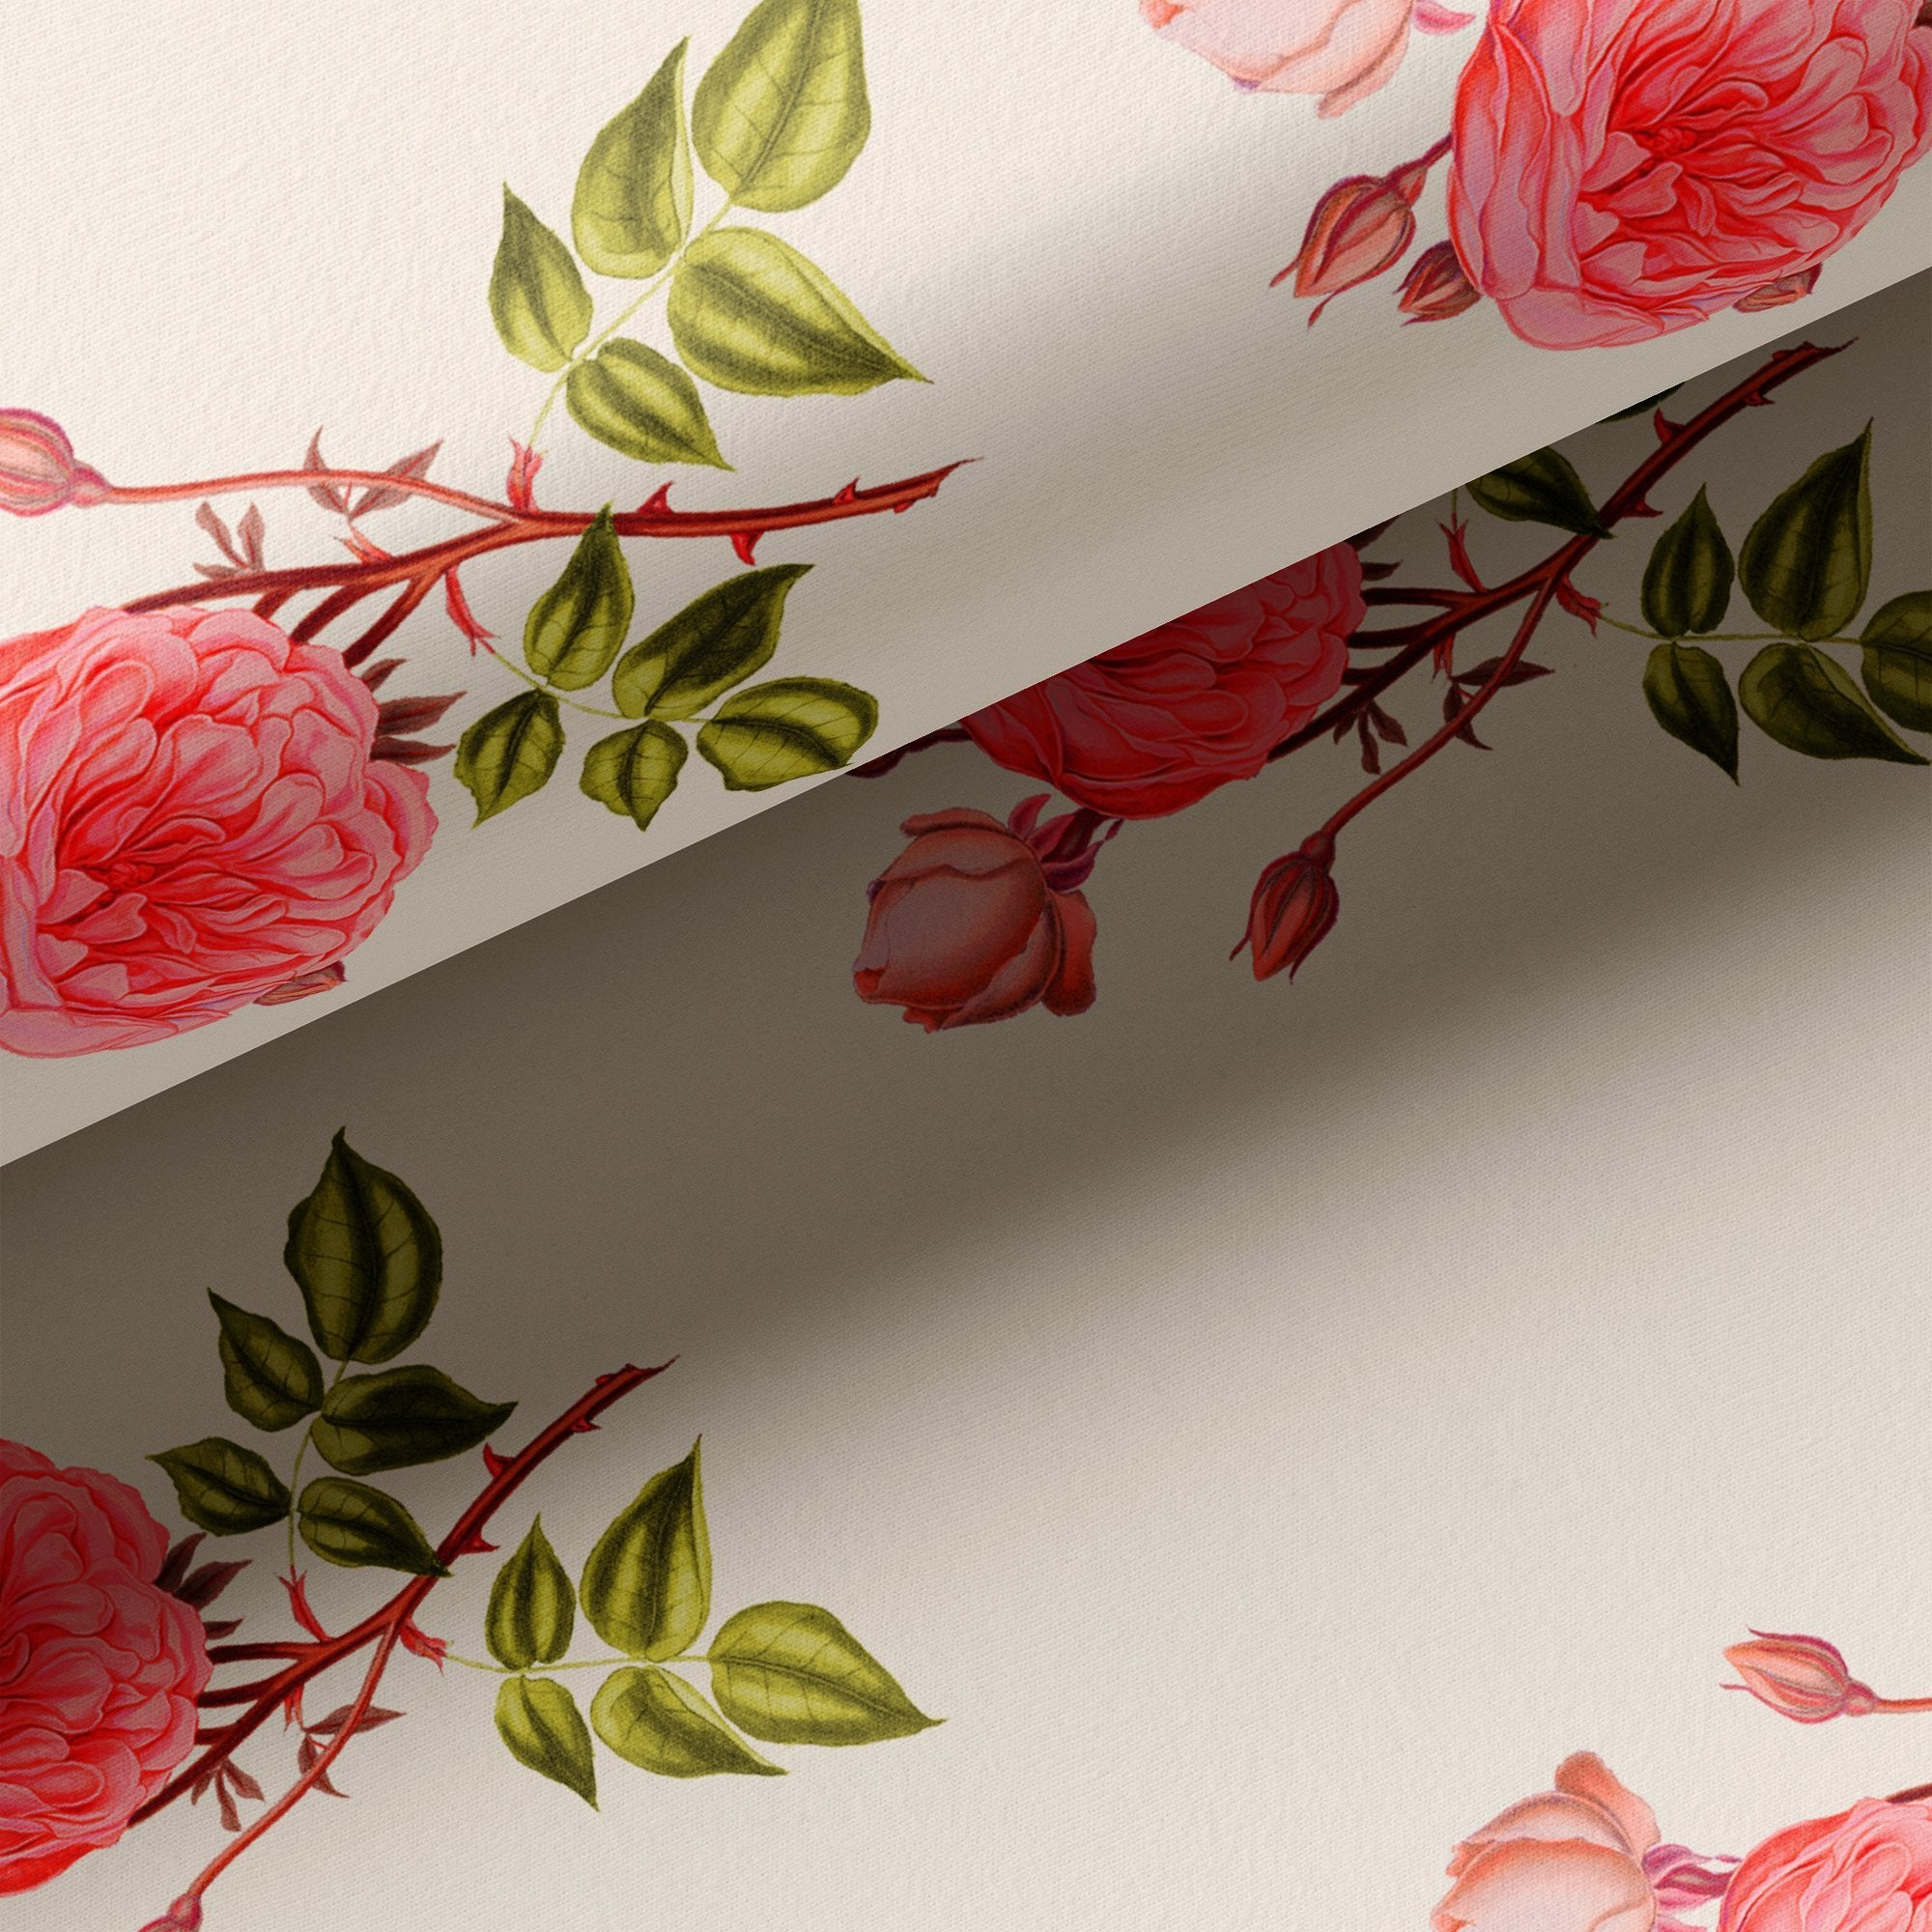 Red Rose Laying Over Peach Base Digital Printed Fabric - FAB VOGUE Studio. Shop Fabric @ www.fabvoguestudio.com